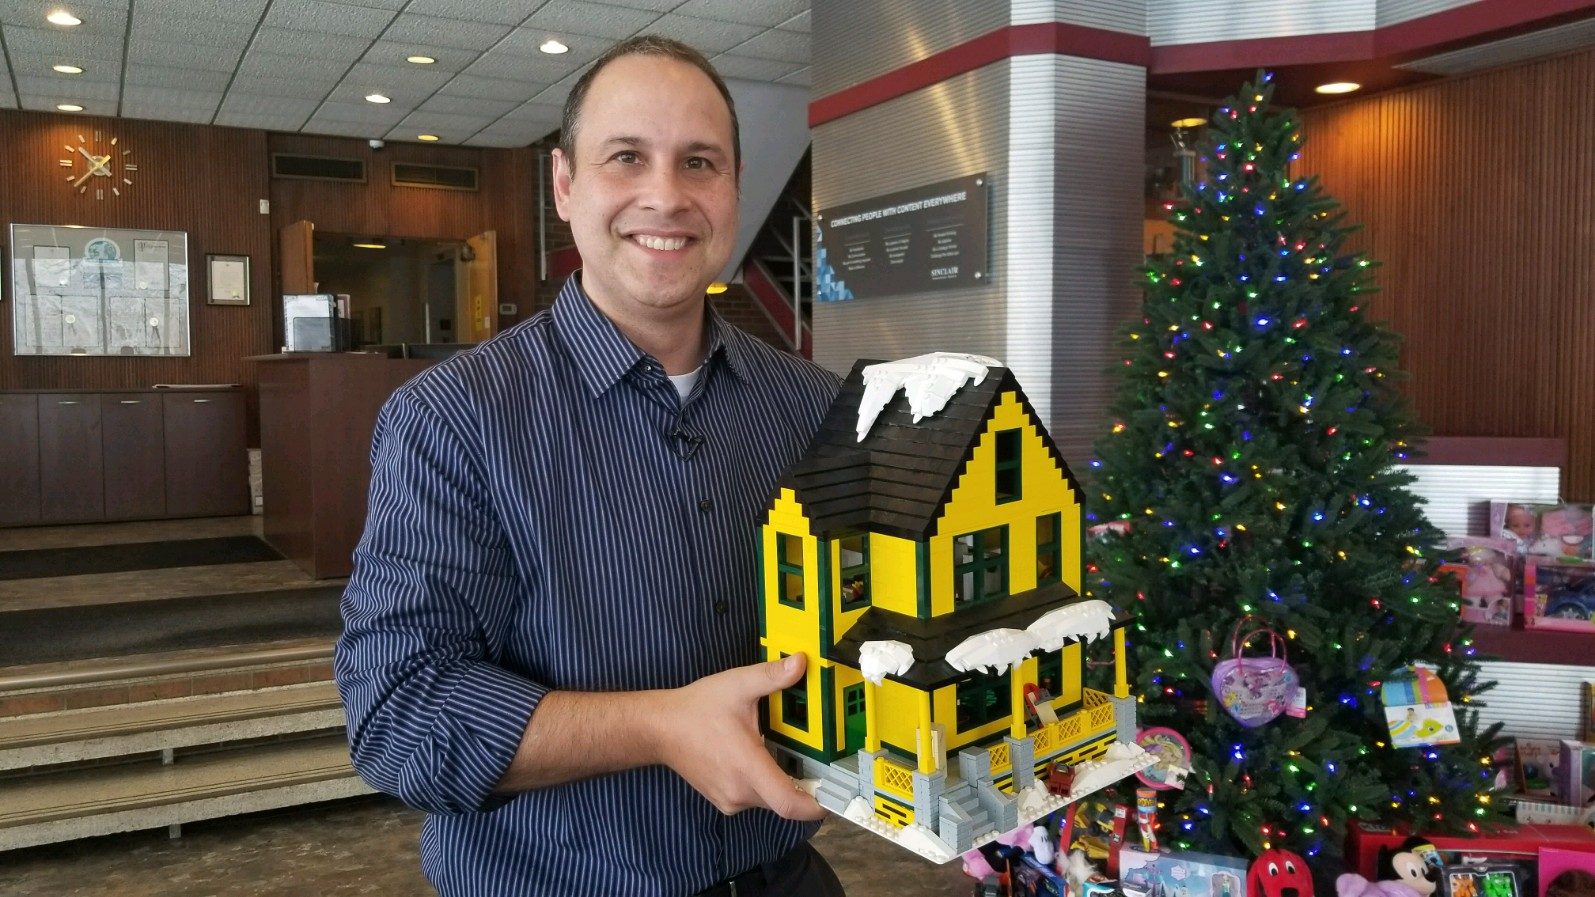 A Syracuse man's loving recreation of the setting for A Christmas Story could become an official Lego set you can buy in stores.